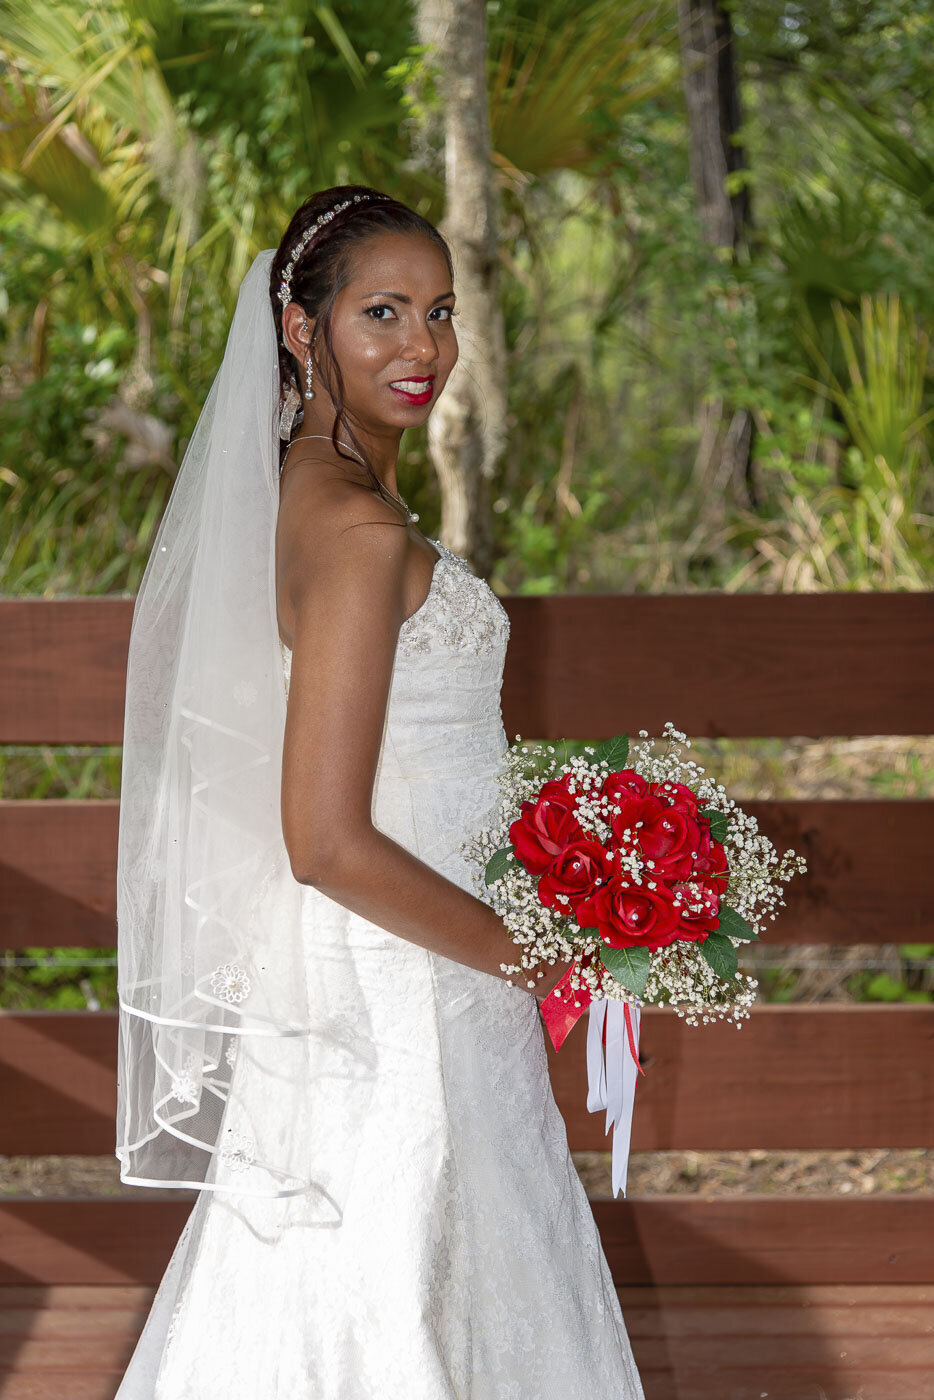 The bride poses for a bridal portrait